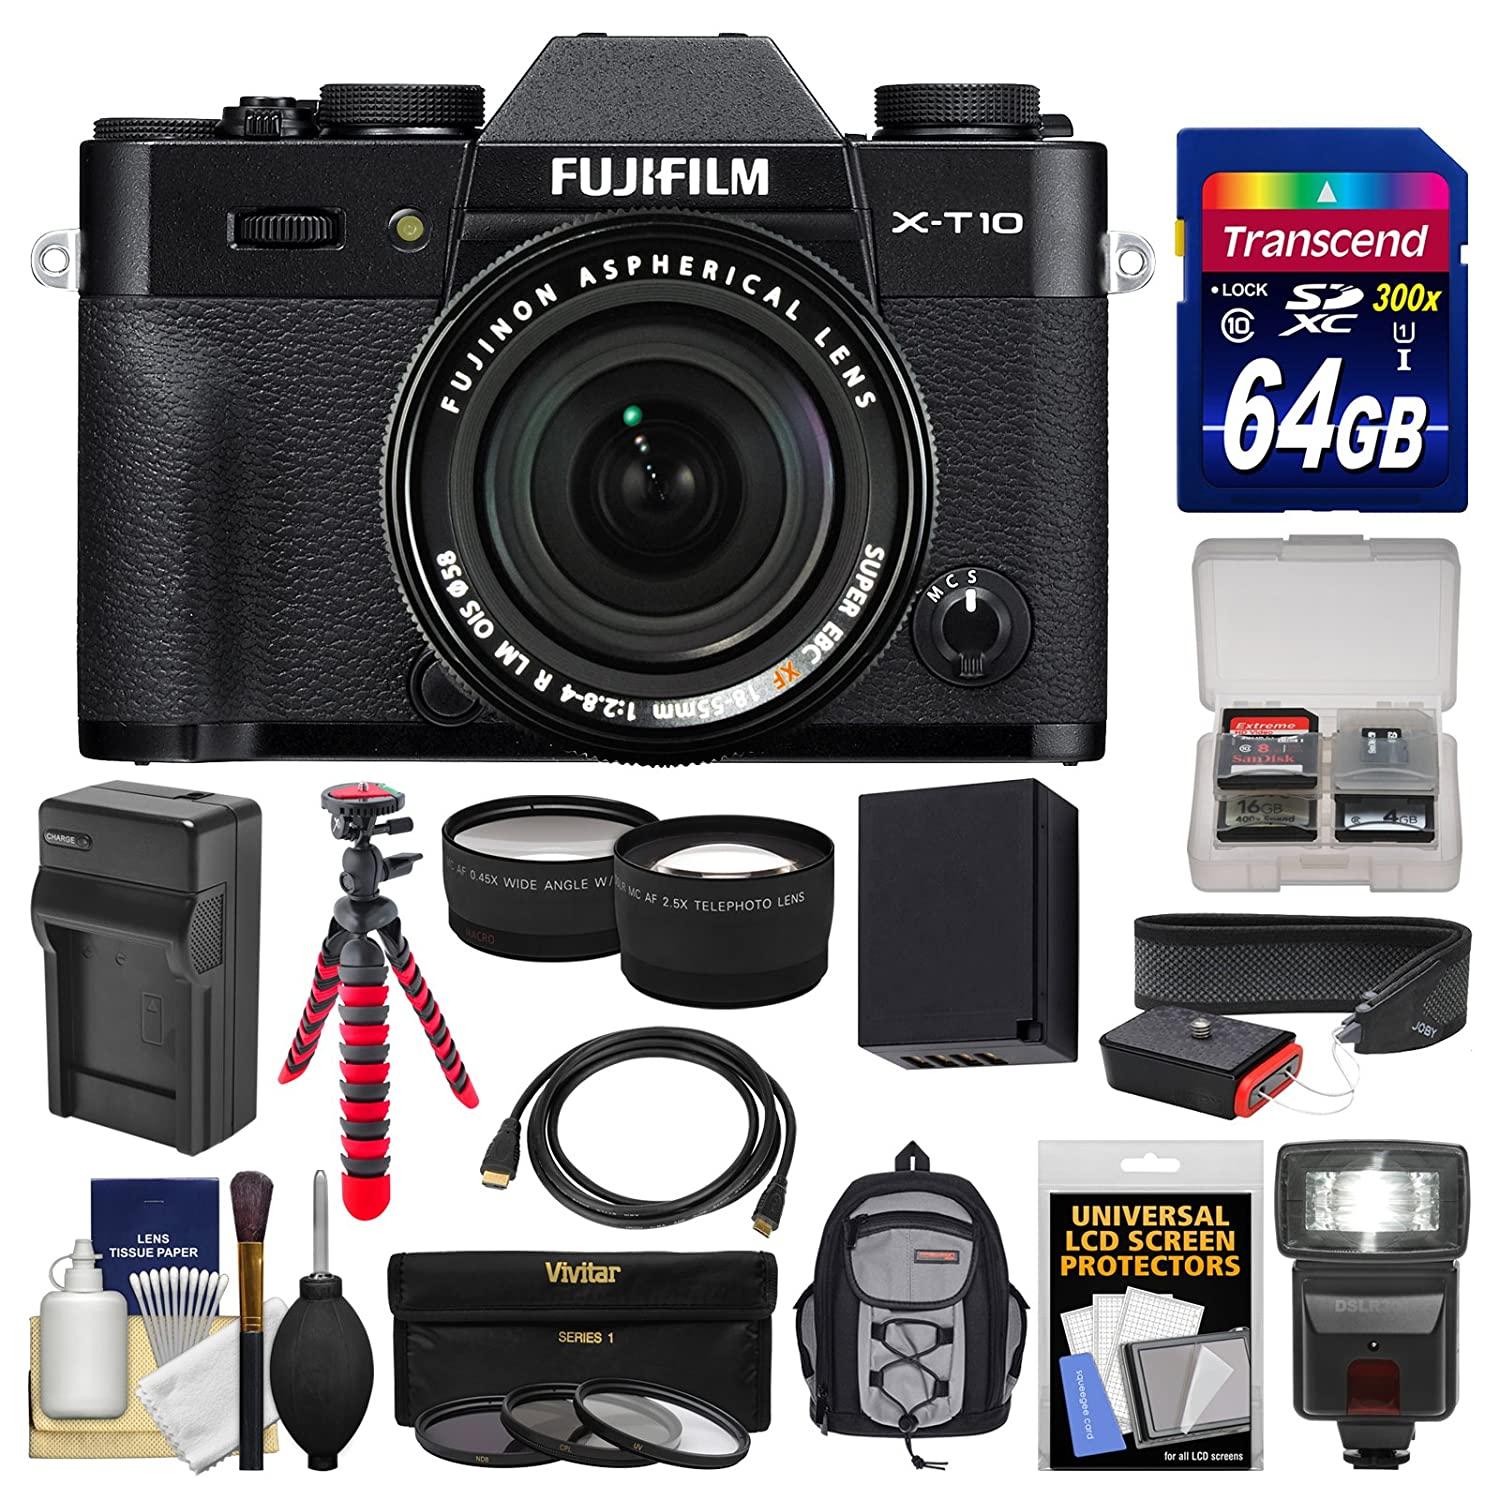 Fujifilm X-T10 Digital Camera & 18-55mm XF Lens (Black) with 64GB Card + Backpack + Flash + Battery & Charger + Tripod + Tele/Wide Lens Kit